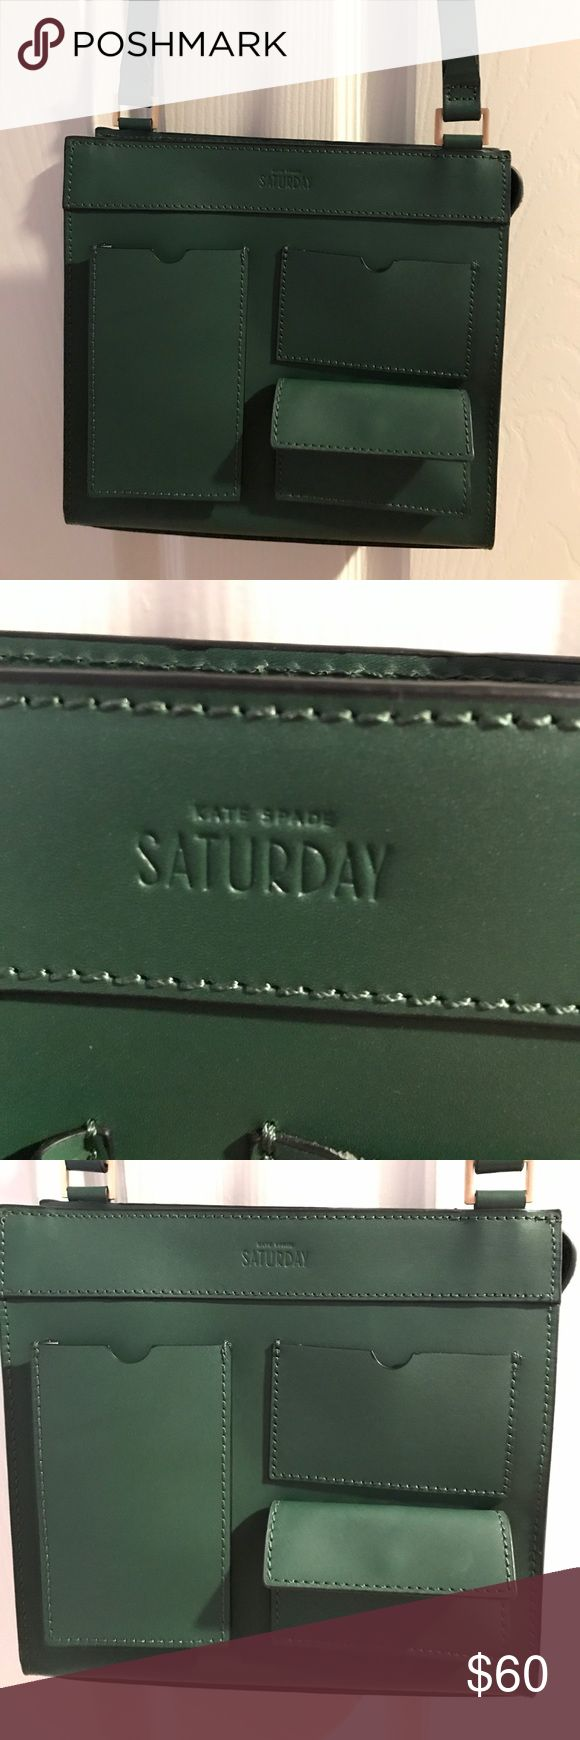 Kate Spade Saturday Leather Bag Dark Green Leather Kate Spade Saturday Bag, was just stored in the cabinet, small scratches but not noticeable (please see pictures for reference). It has 3 pockets in front. For the phone pocket, you can put your ip6 or ip7 but it would be tight but still fits. Adjustable handle Kate Spade Saturday Bags